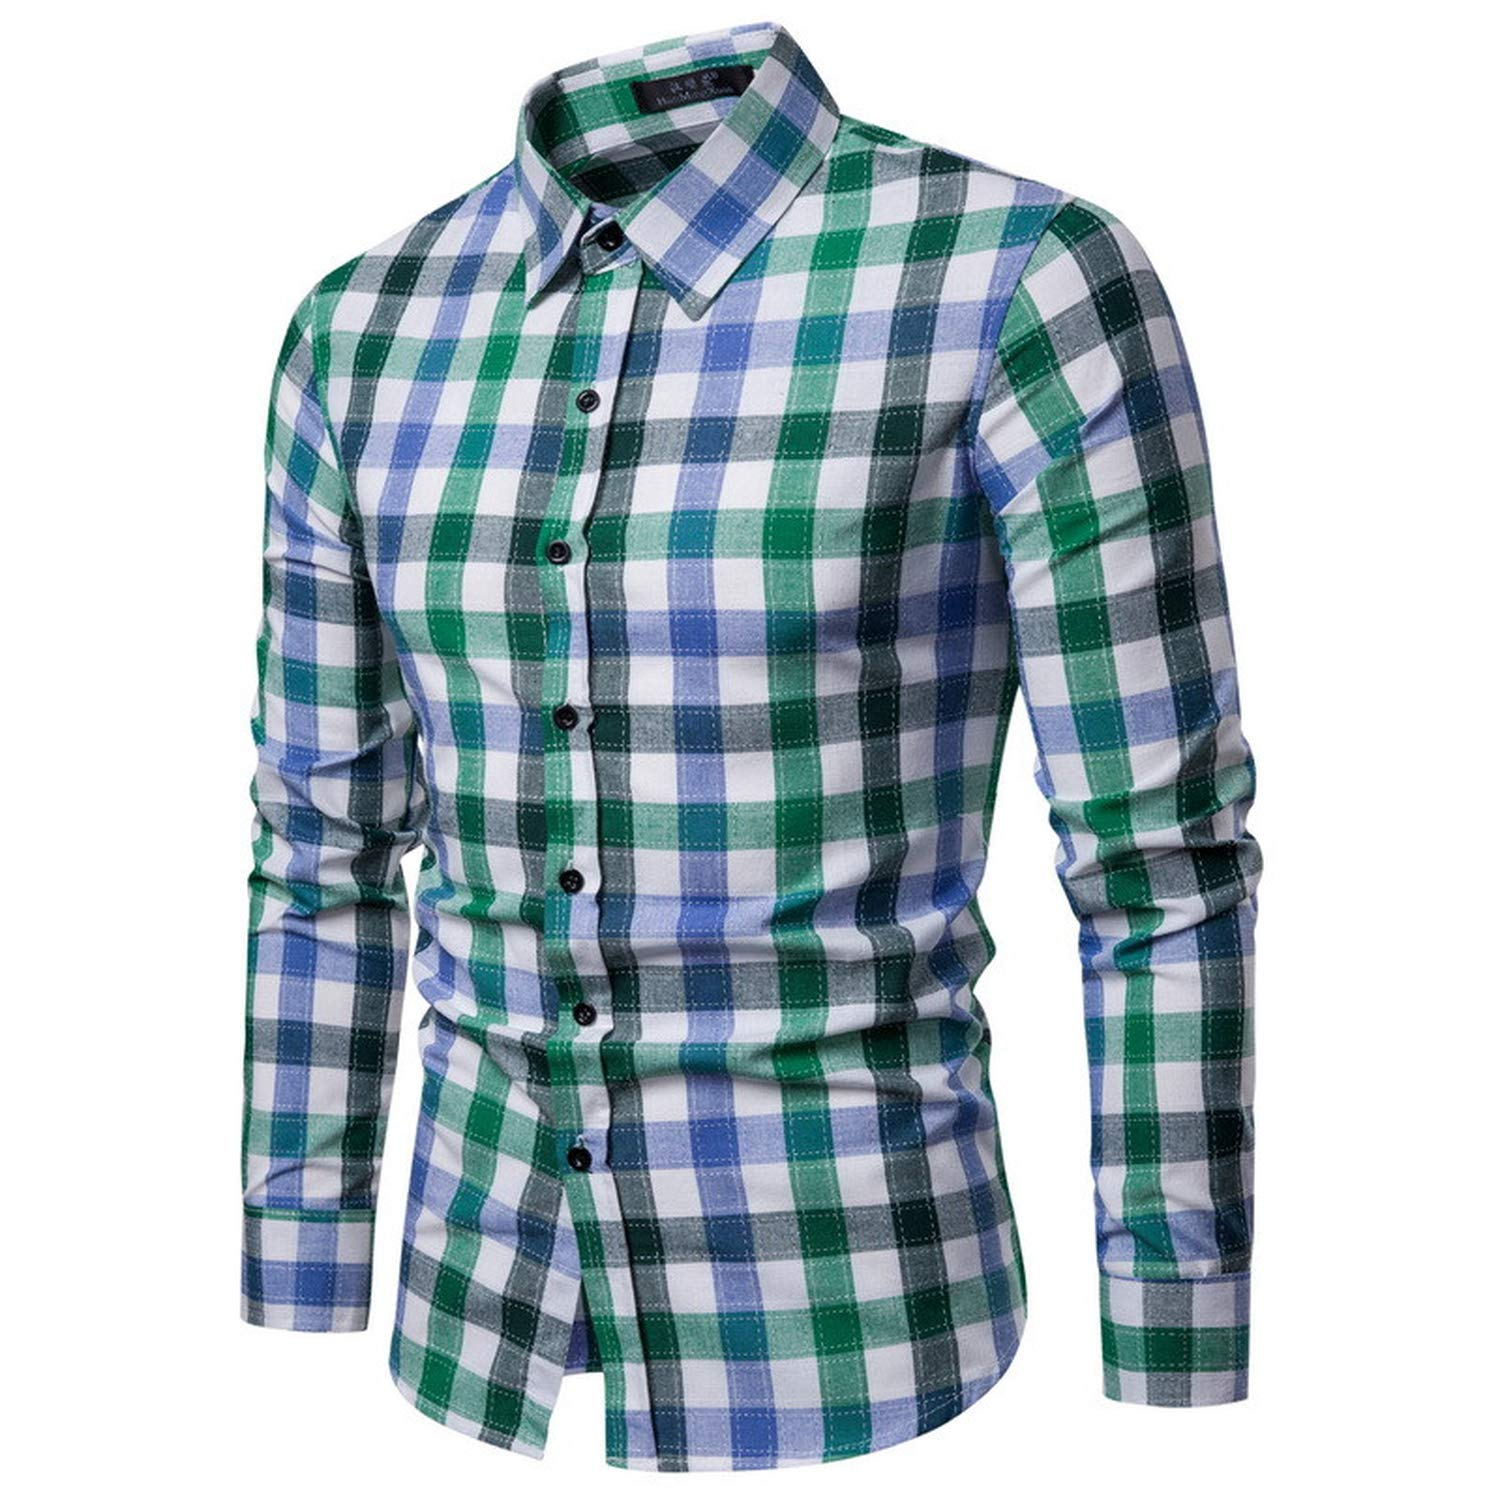 Elegant Business Blouse Mens Casual Coloured Checked Print Shirt Long Sleeves Casual Trend Blouse Males,Red,L,China